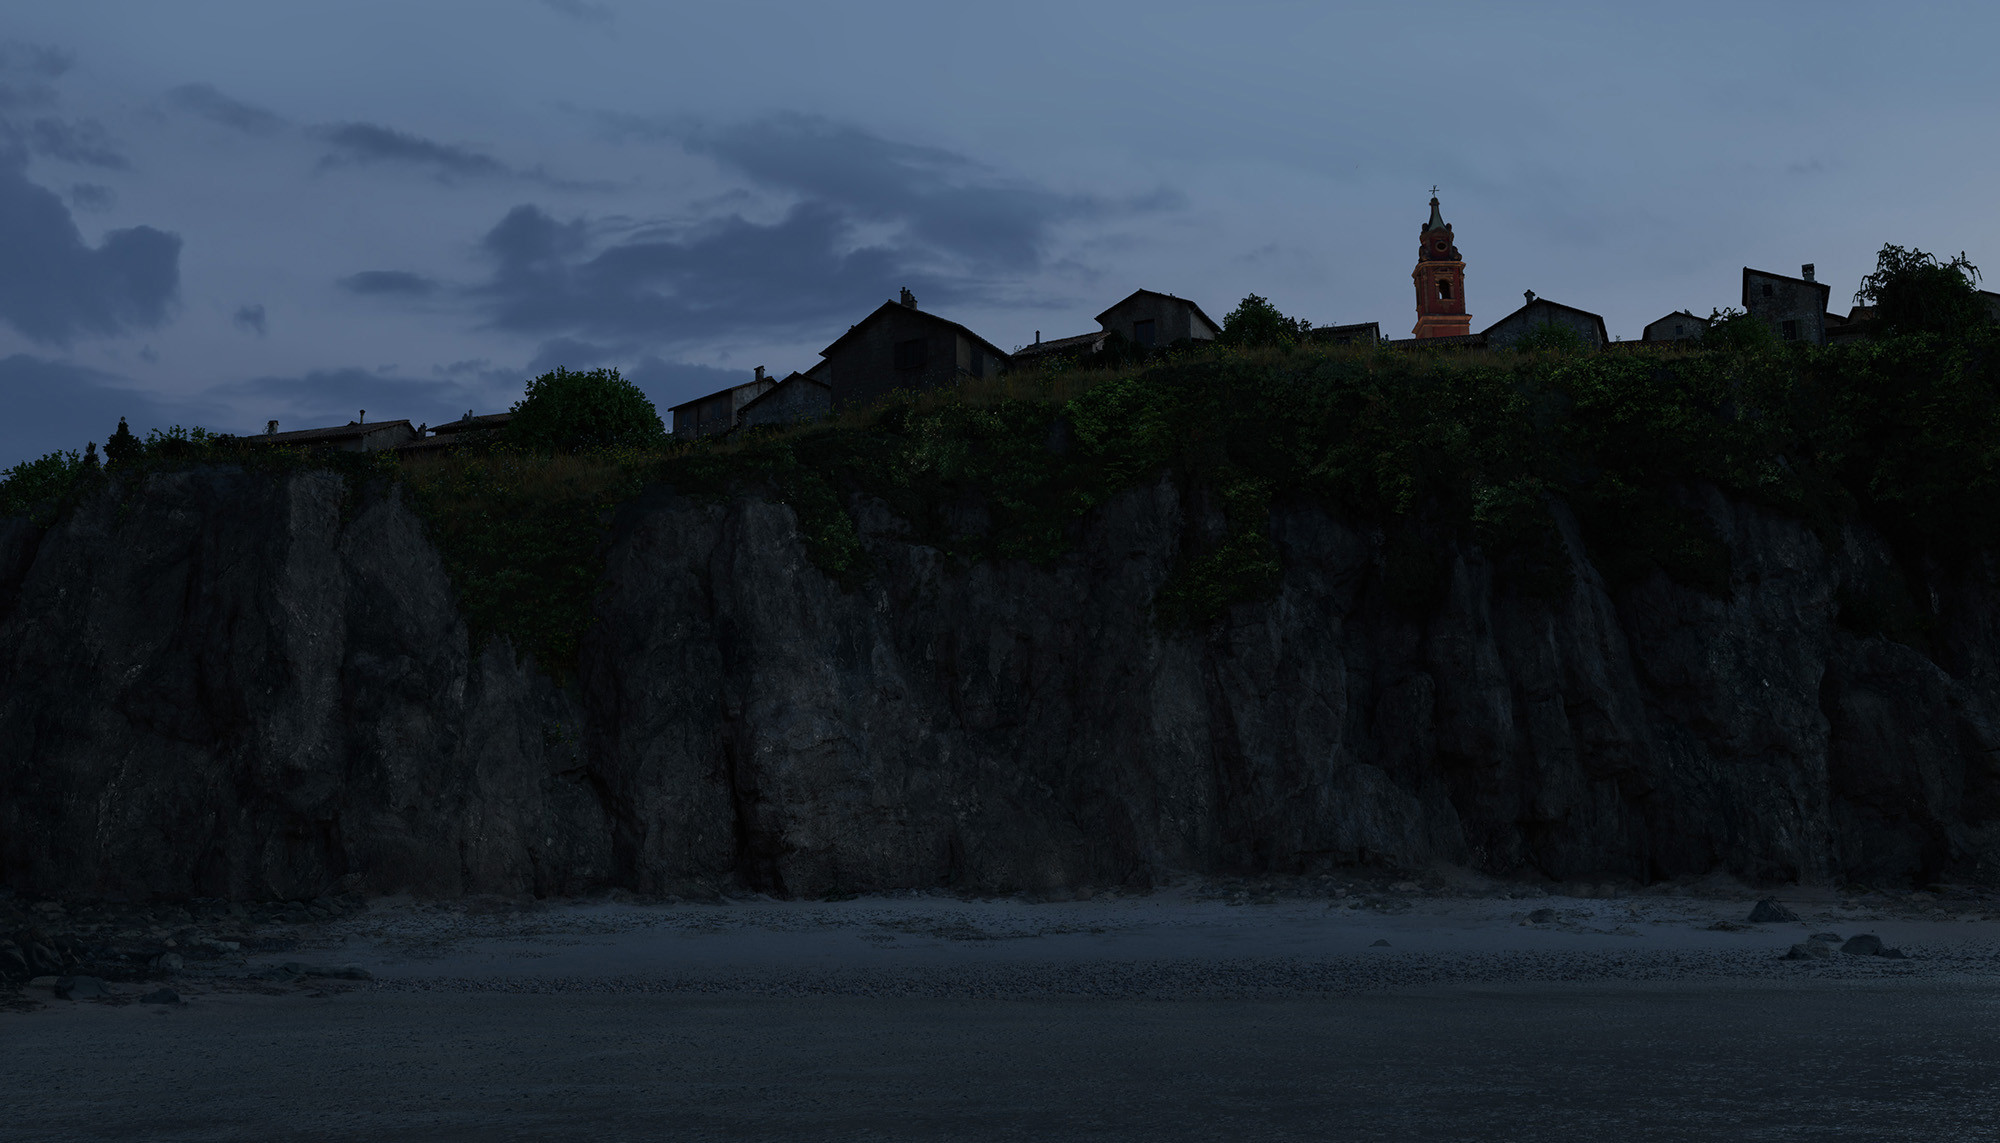 Italian town, view from the beach, matte painting. Cliffs texturing/replacement, beach dressing up and texturing, vegetation, buildings dirt and texturing pass, church detailing, sky